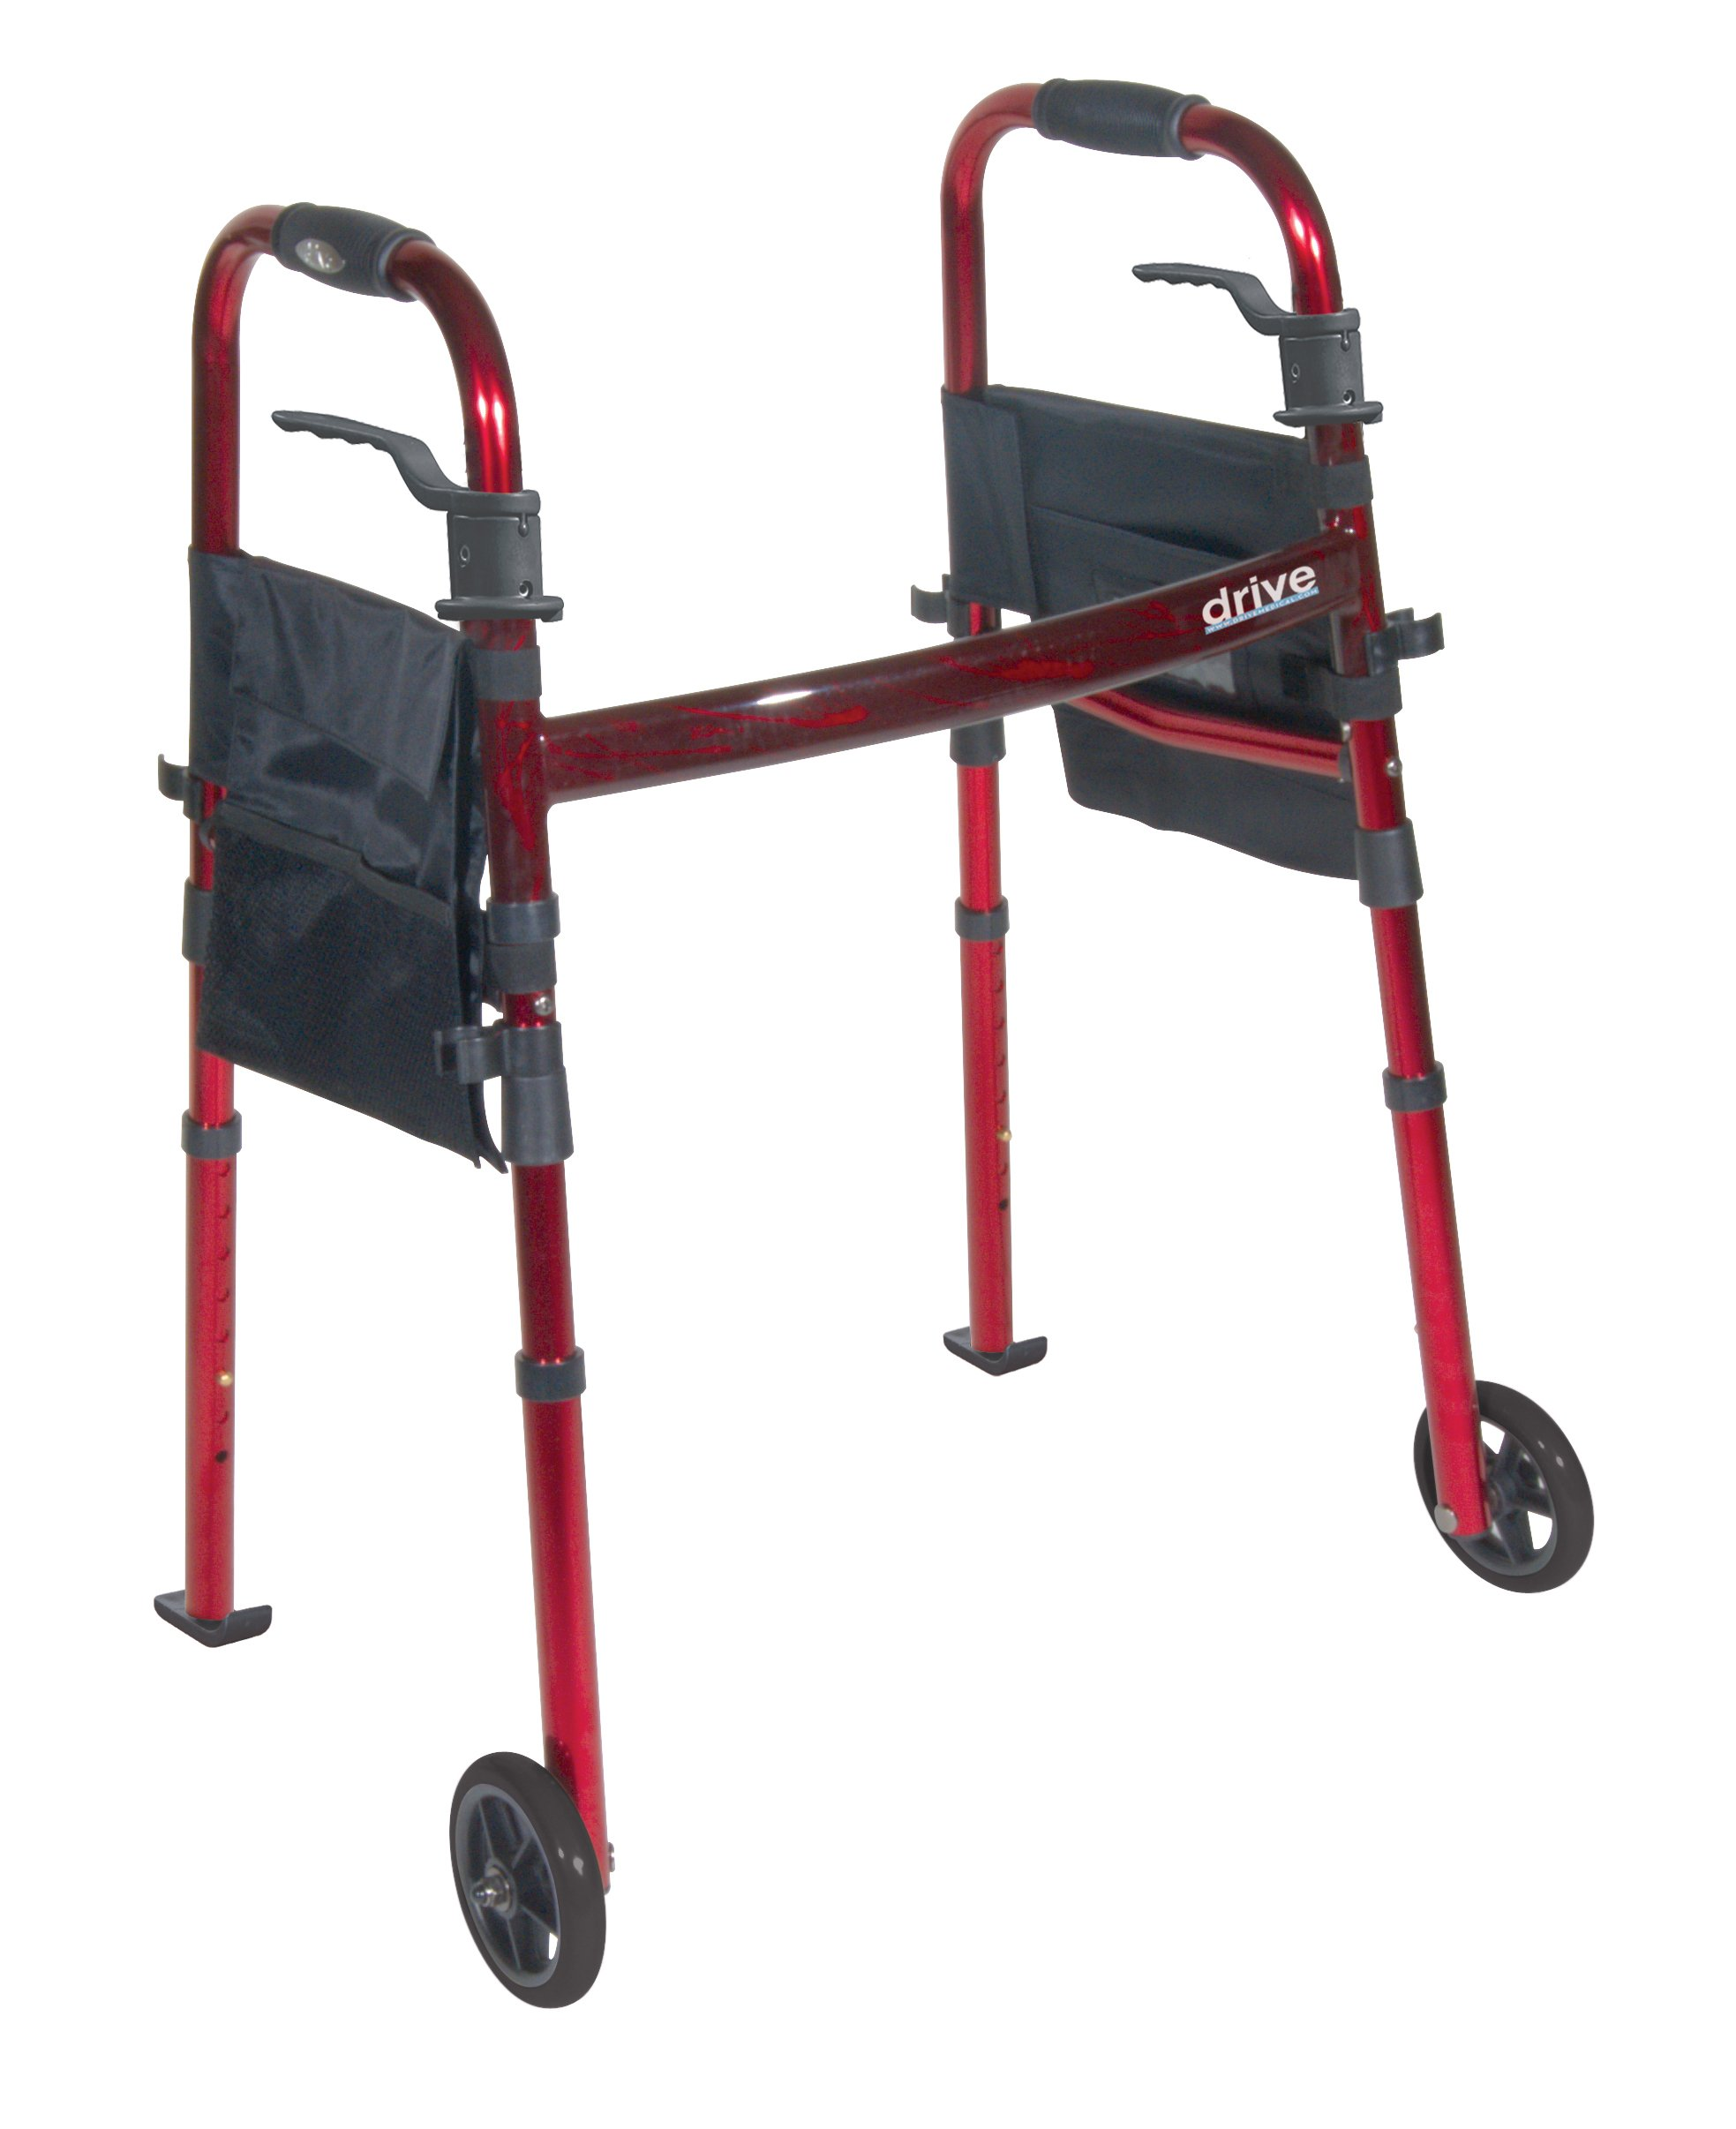 Drive Medical Deluxe Portable Folding Travel Walker with 5'' Wheels and Fold up Legs, Red